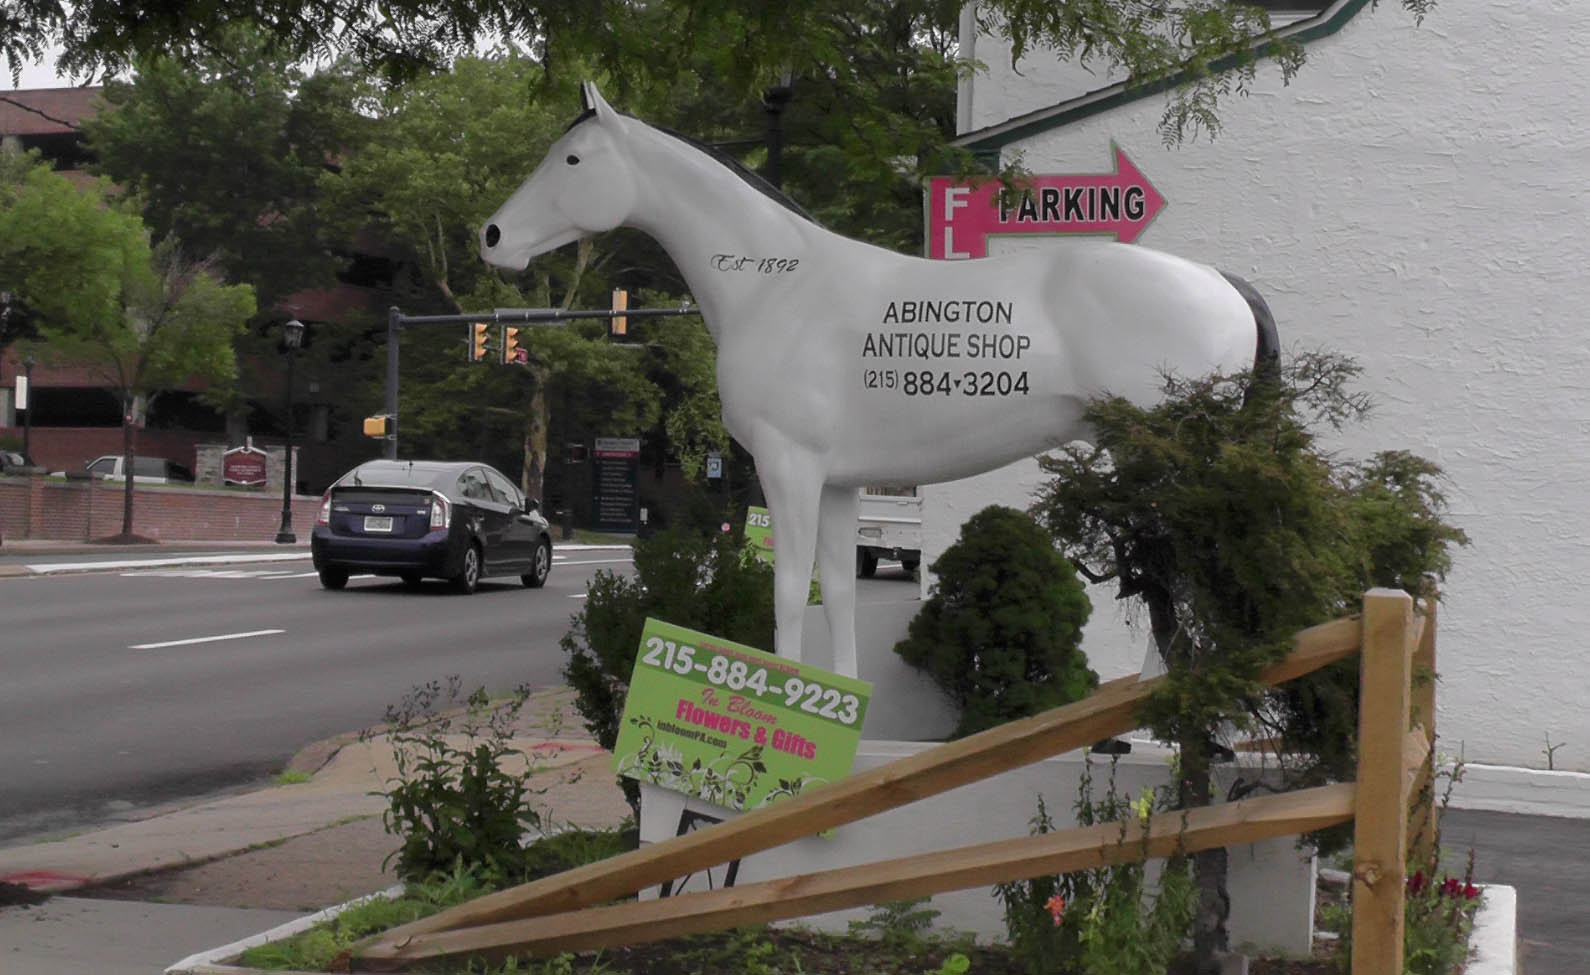 The Famous horse at the Abington Antique shop on Old York Rd